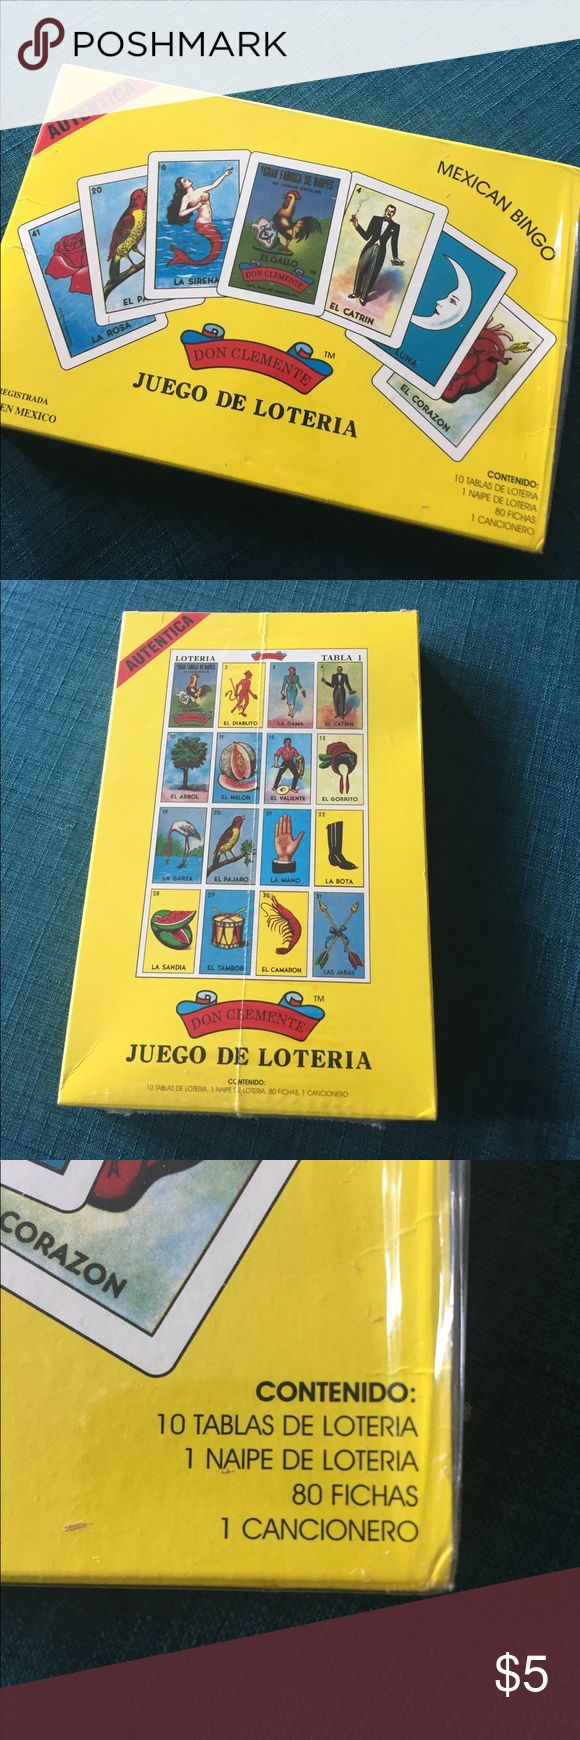 Juego de Loteria (Mexican Bingo) Unopened box of Mexican loteria bingo game.  Great for bundling! Accessories